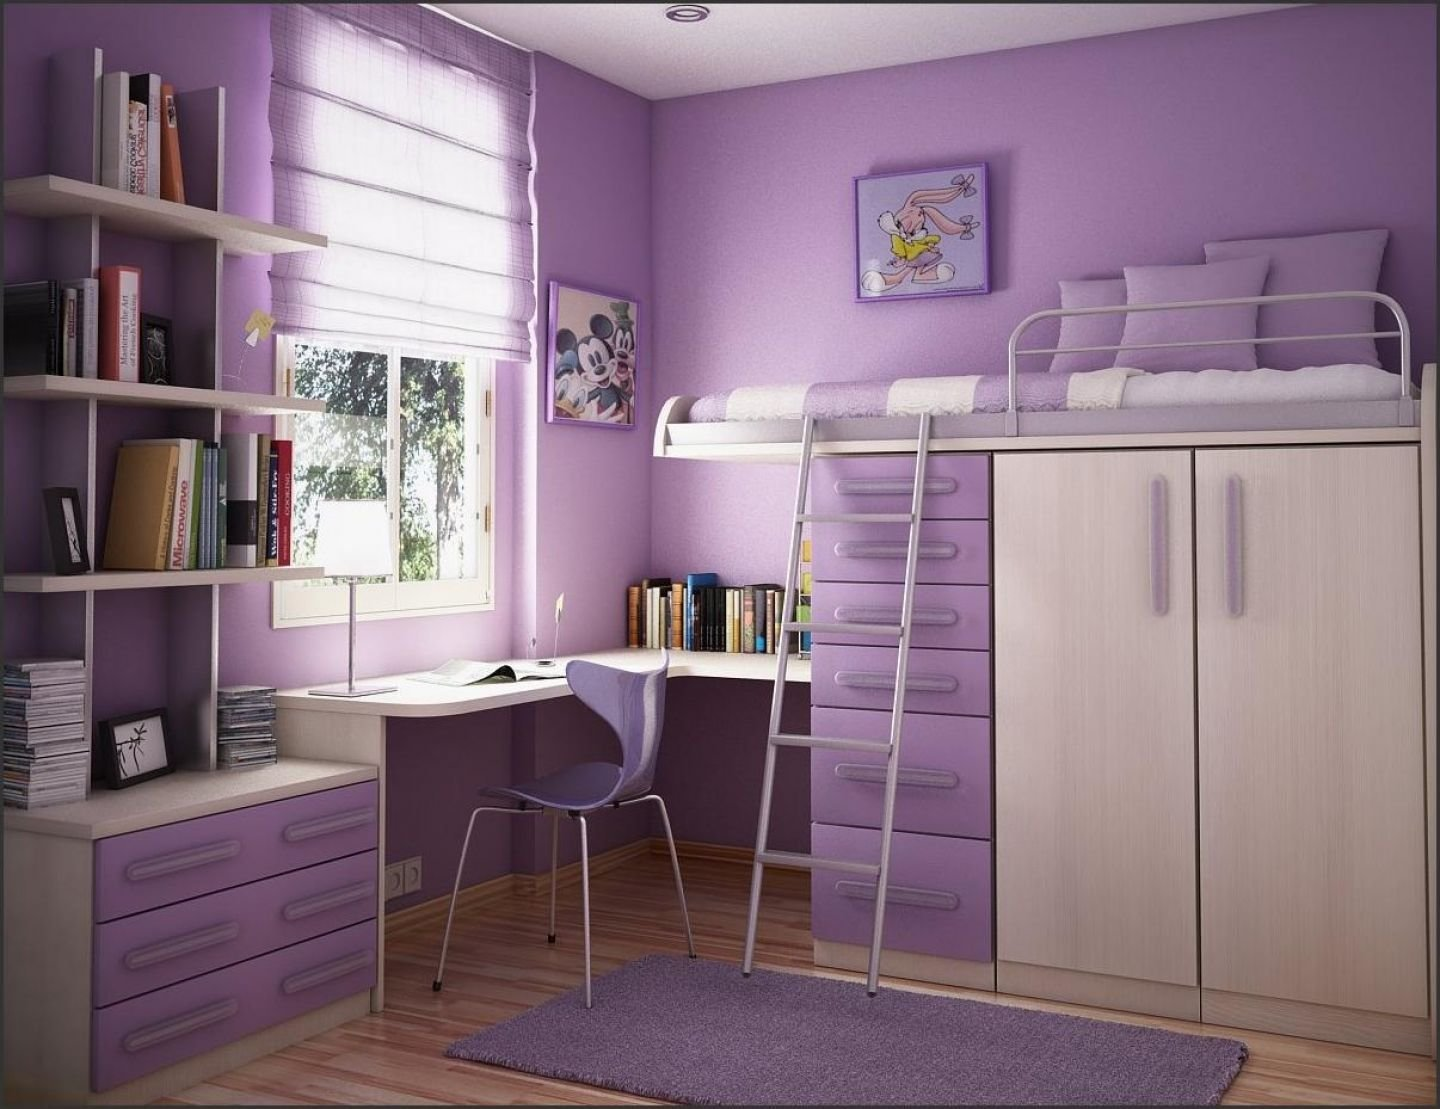 Best T**N Girl Bedroom Decorating Ideas 06 13 14 03 58 With Pictures